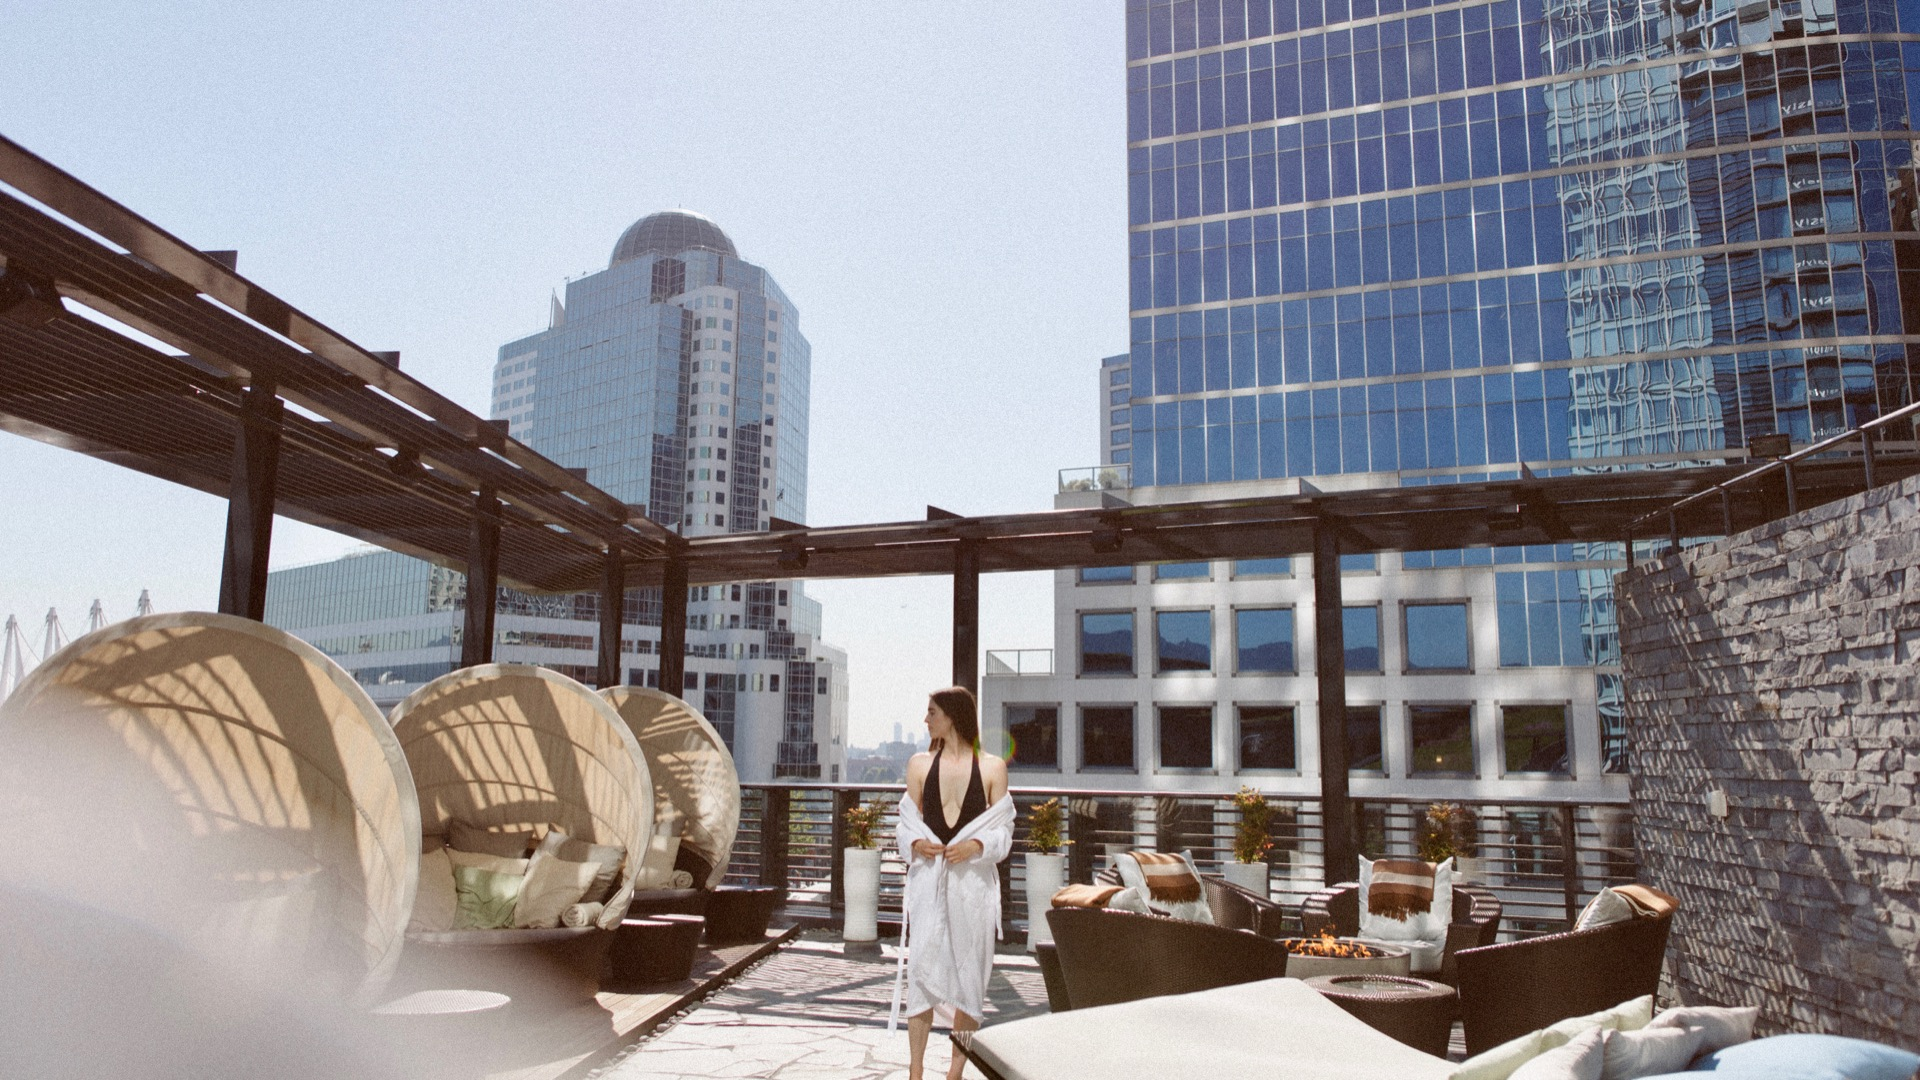 Willow Stream Spa, Fairmont Pacific RIm, Vancouver - Healthy Living + Travel